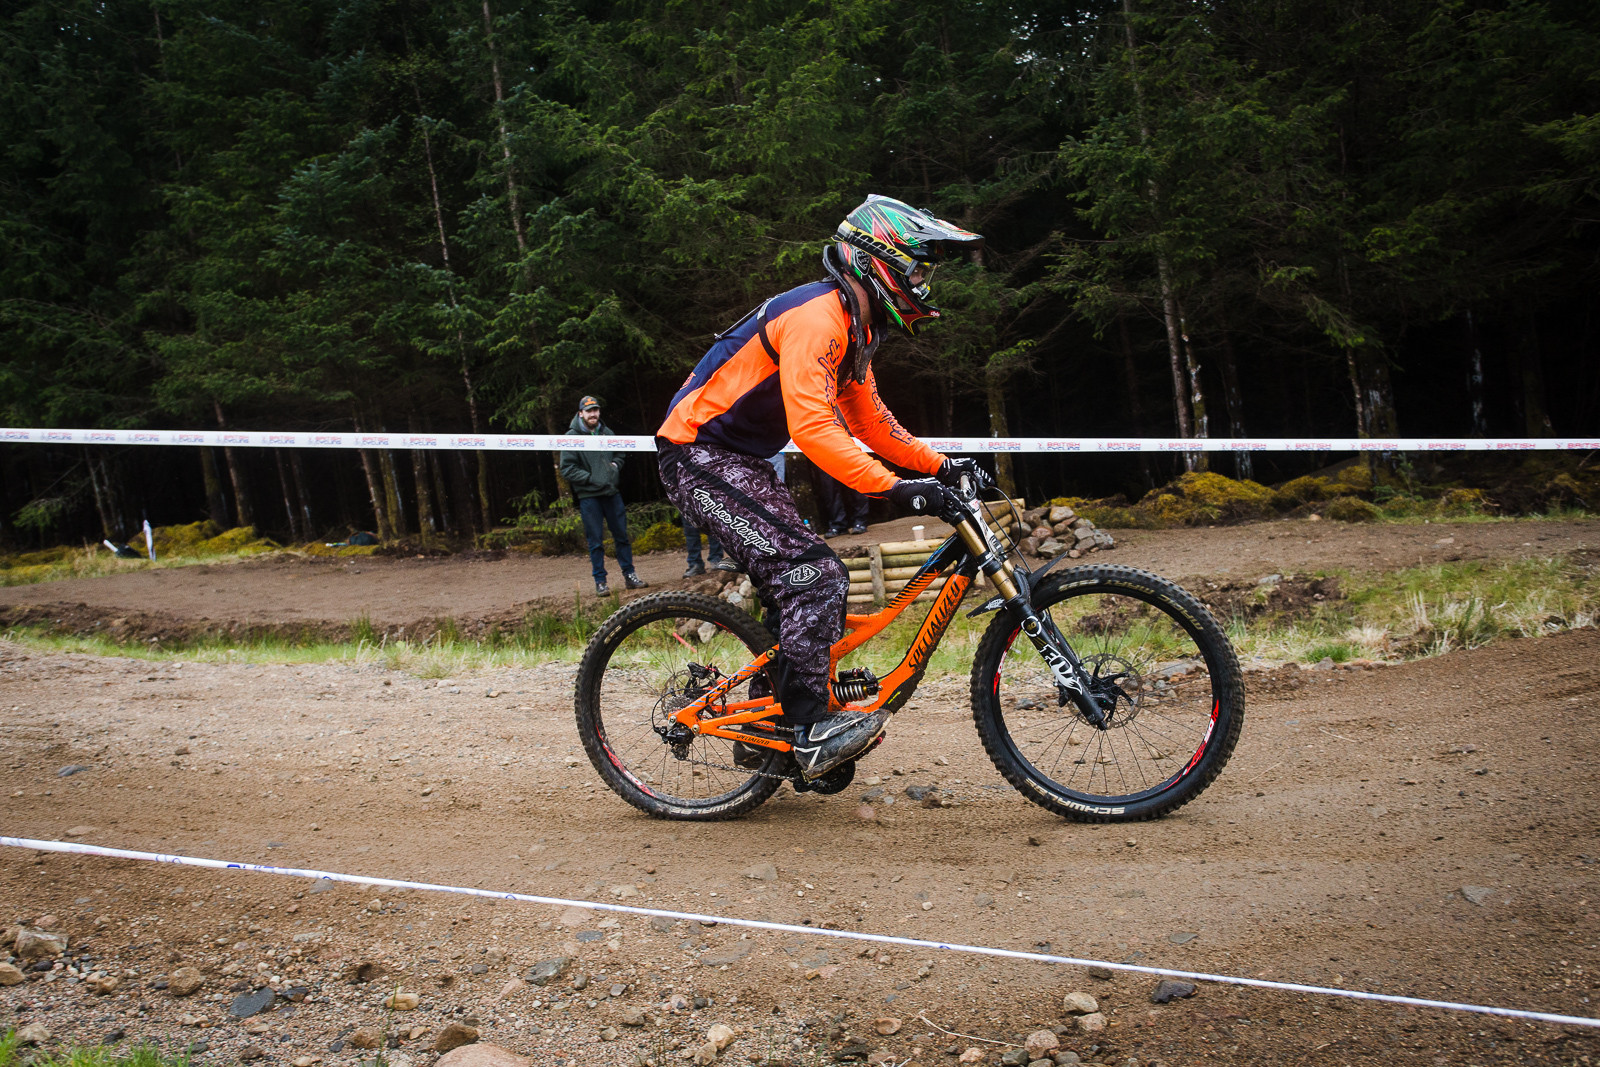 G-Out Fort William - Specialized Demo 8 - G-Out Project - Fort William BDS 2015 - Mountain Biking Pictures - Vital MTB